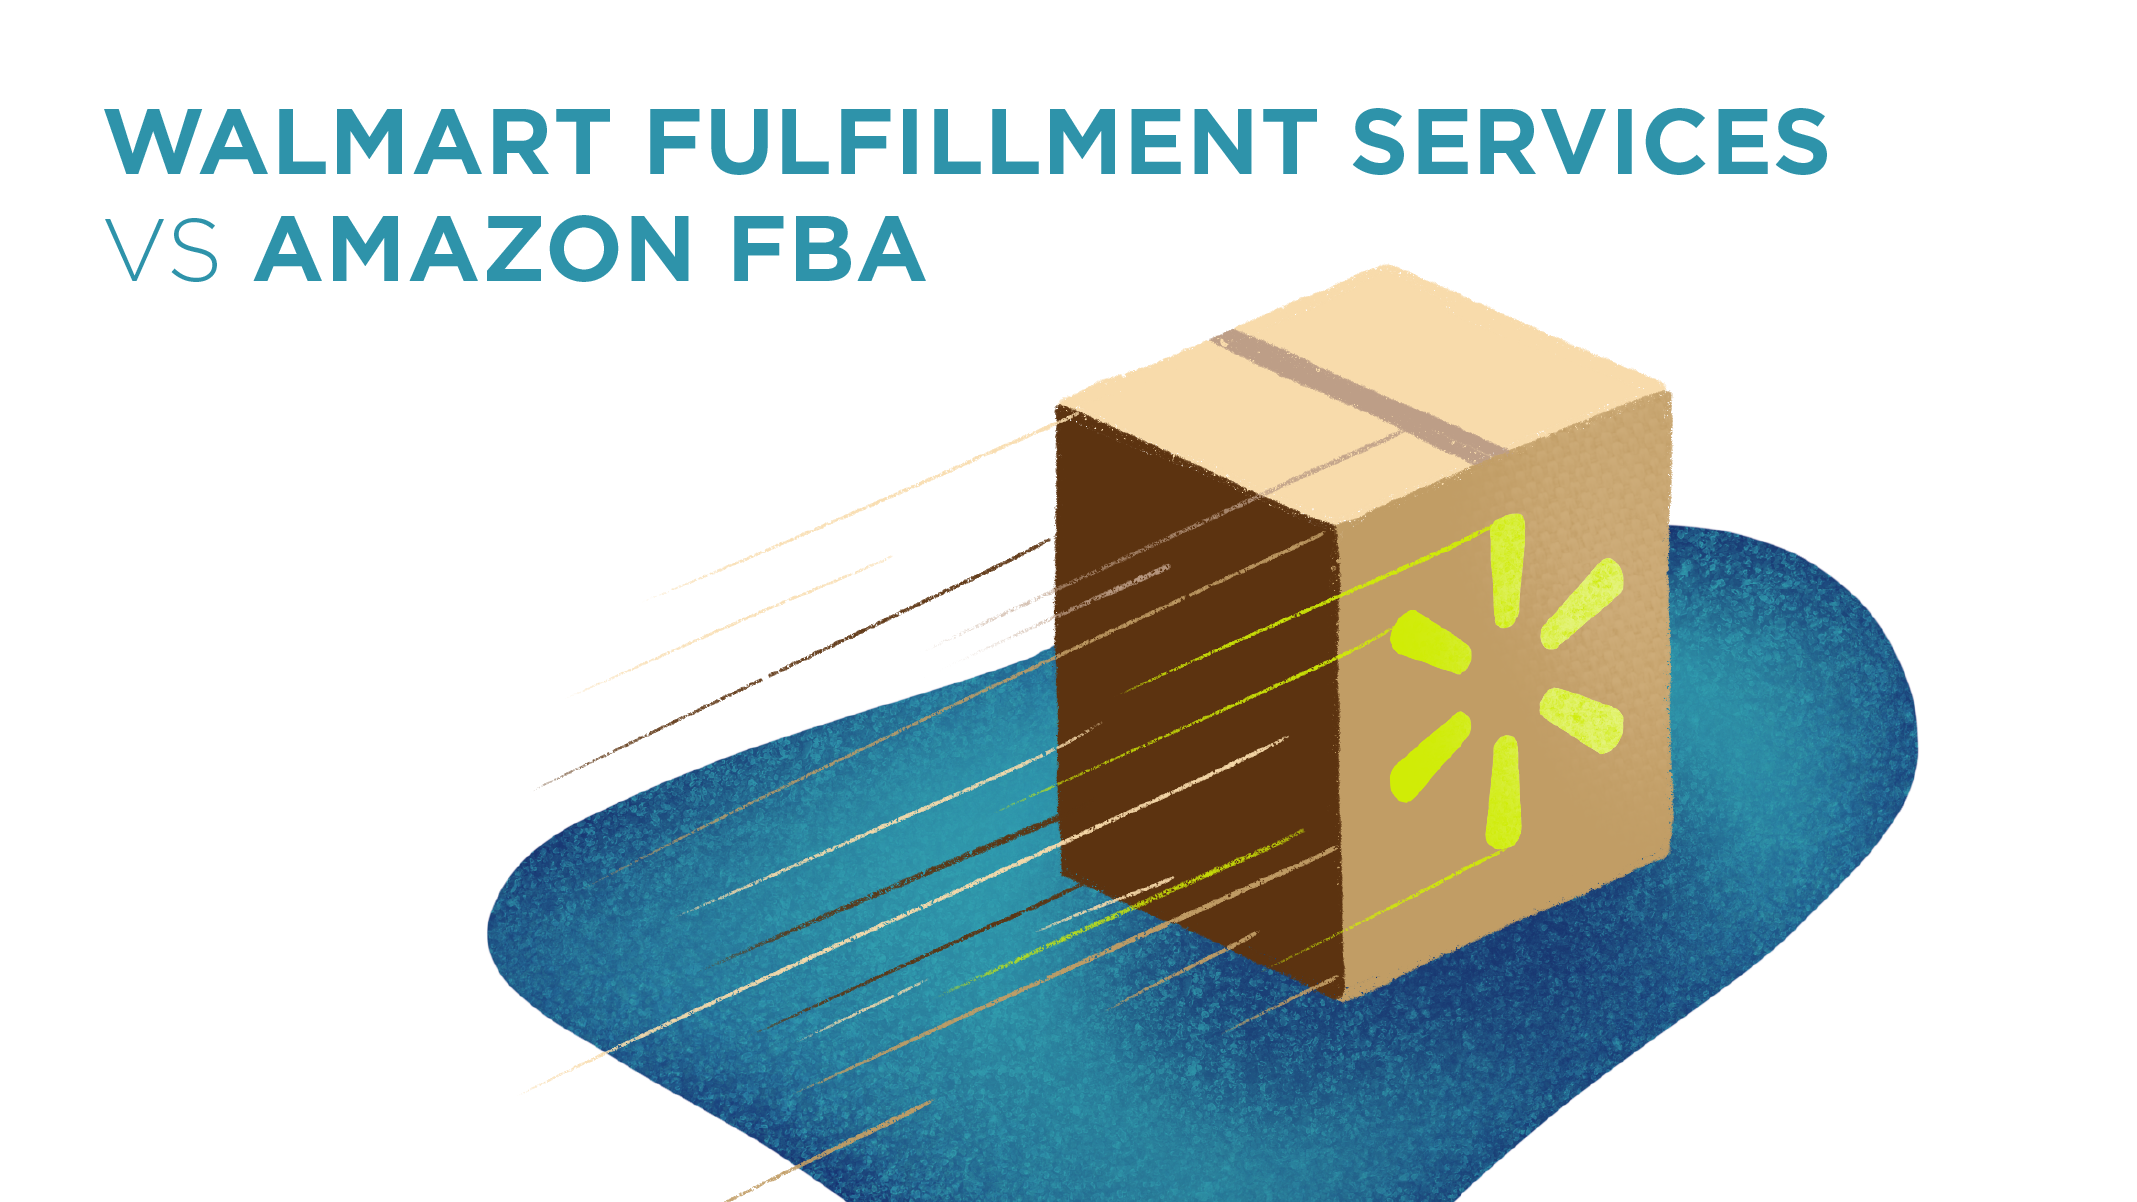 Walmart Fulfillment Services vs. Amazon FBA